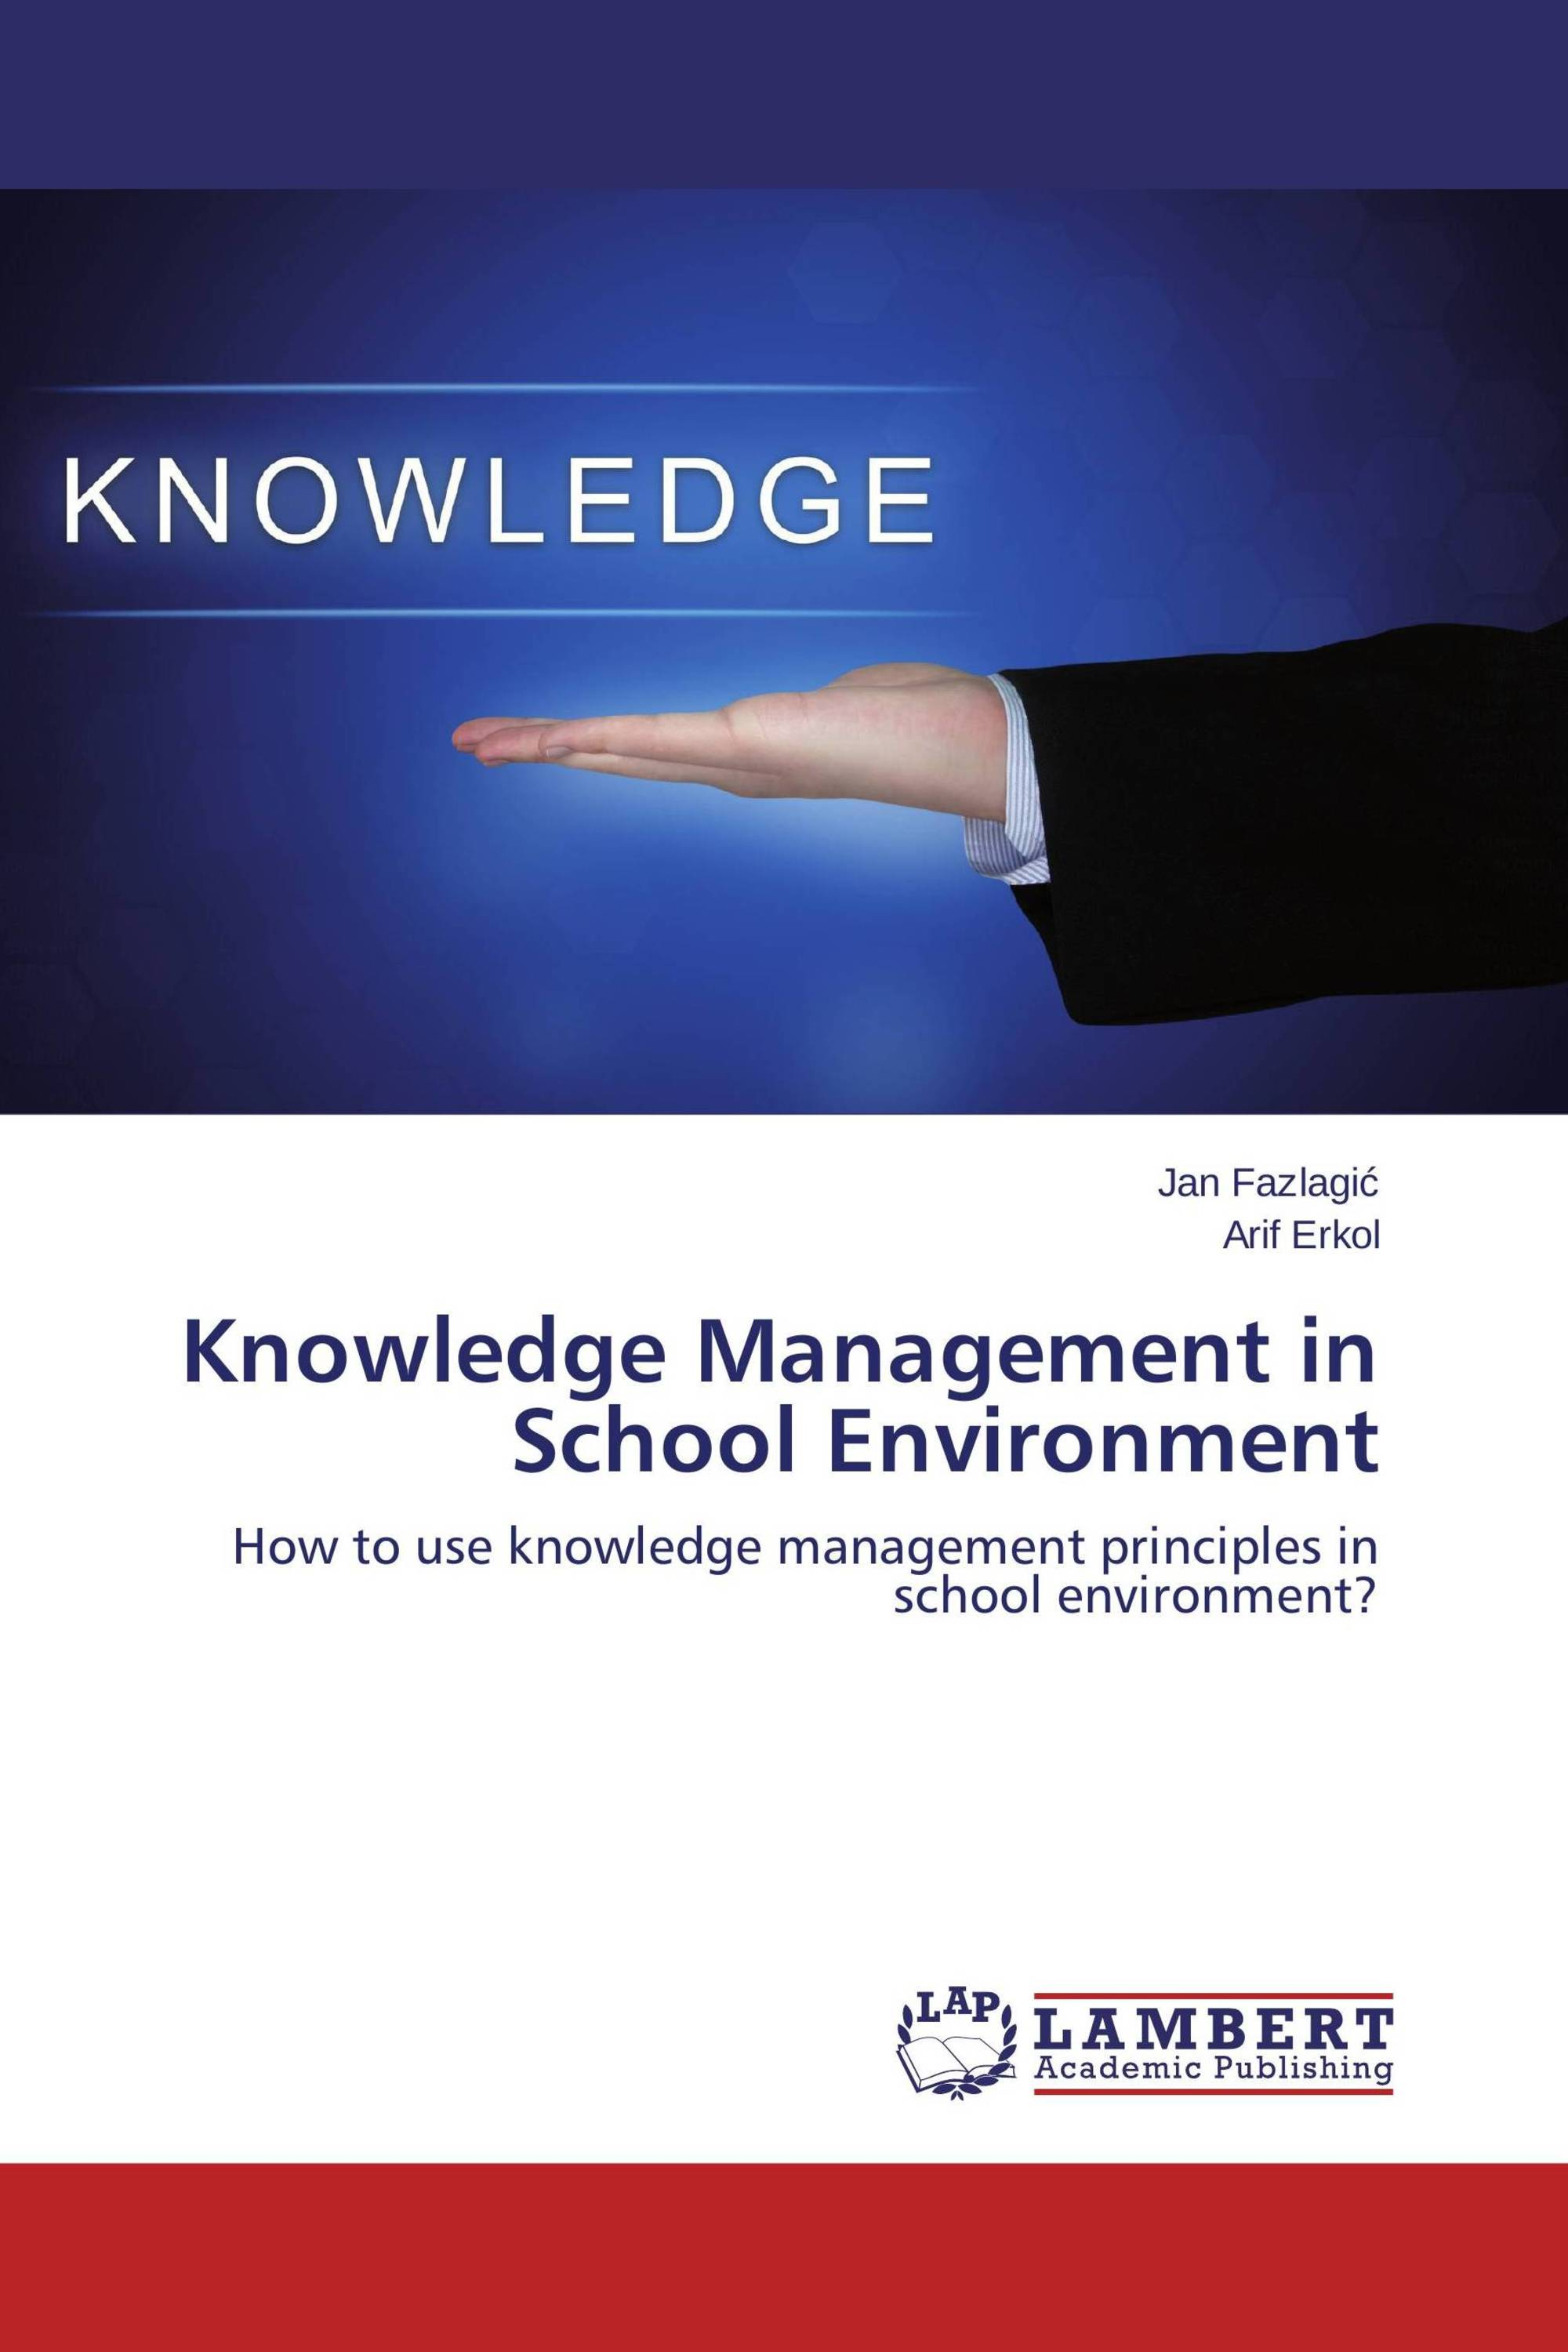 use of knowledge A knowledge base, supported by a strong knowledge management program, ensures new hires are trained with the latest information and get consistent guidance that translates to a better work environment and lower costs.